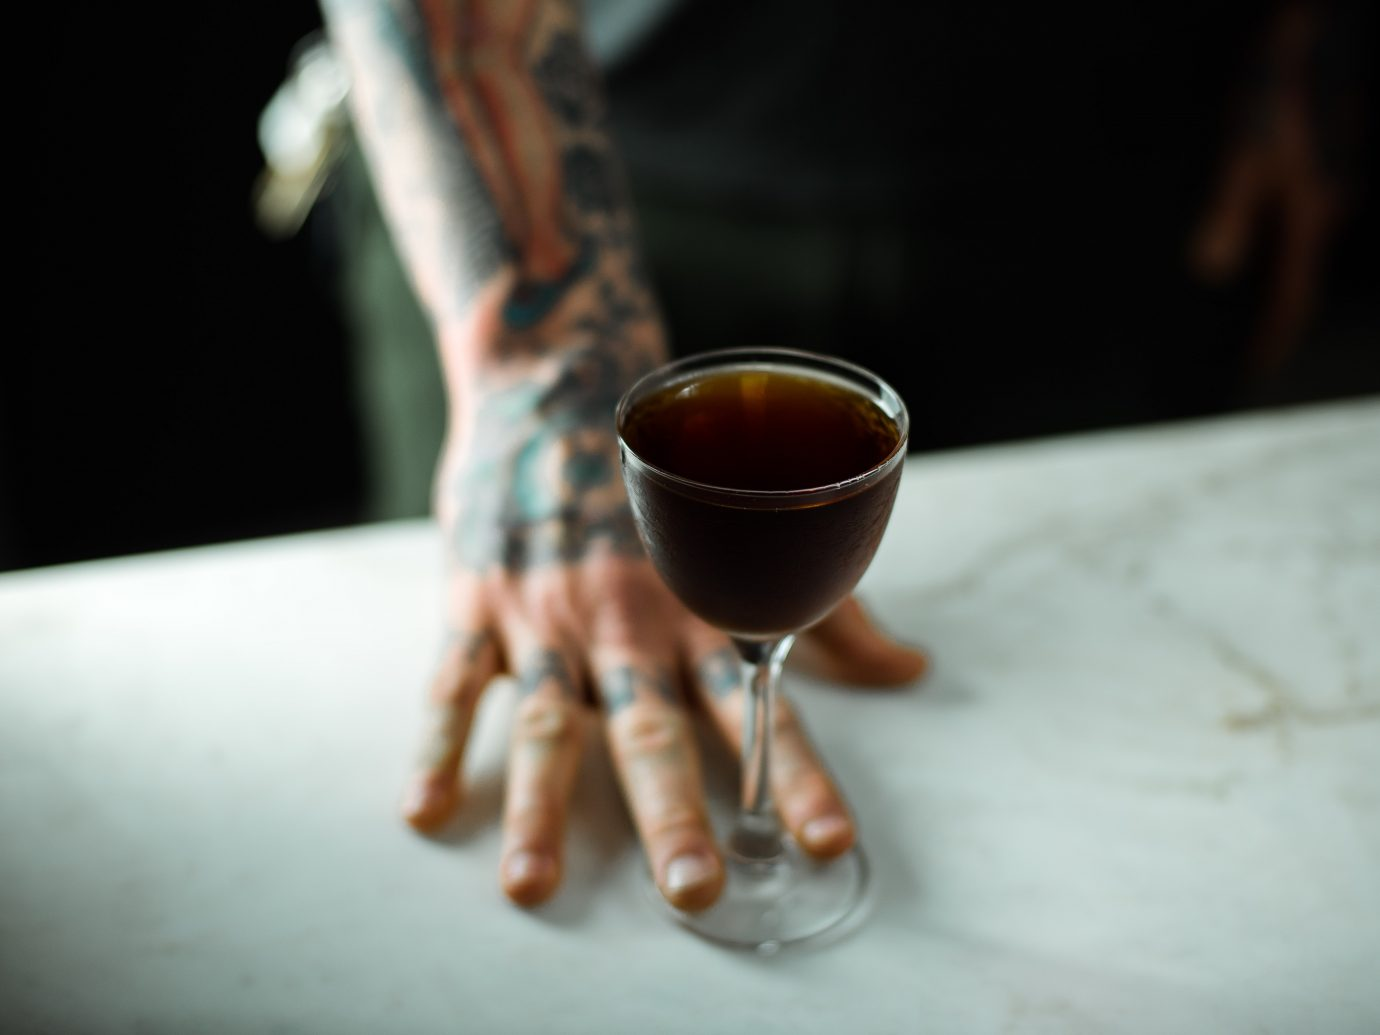 Black Manhattan cocktail served by tattooed arm